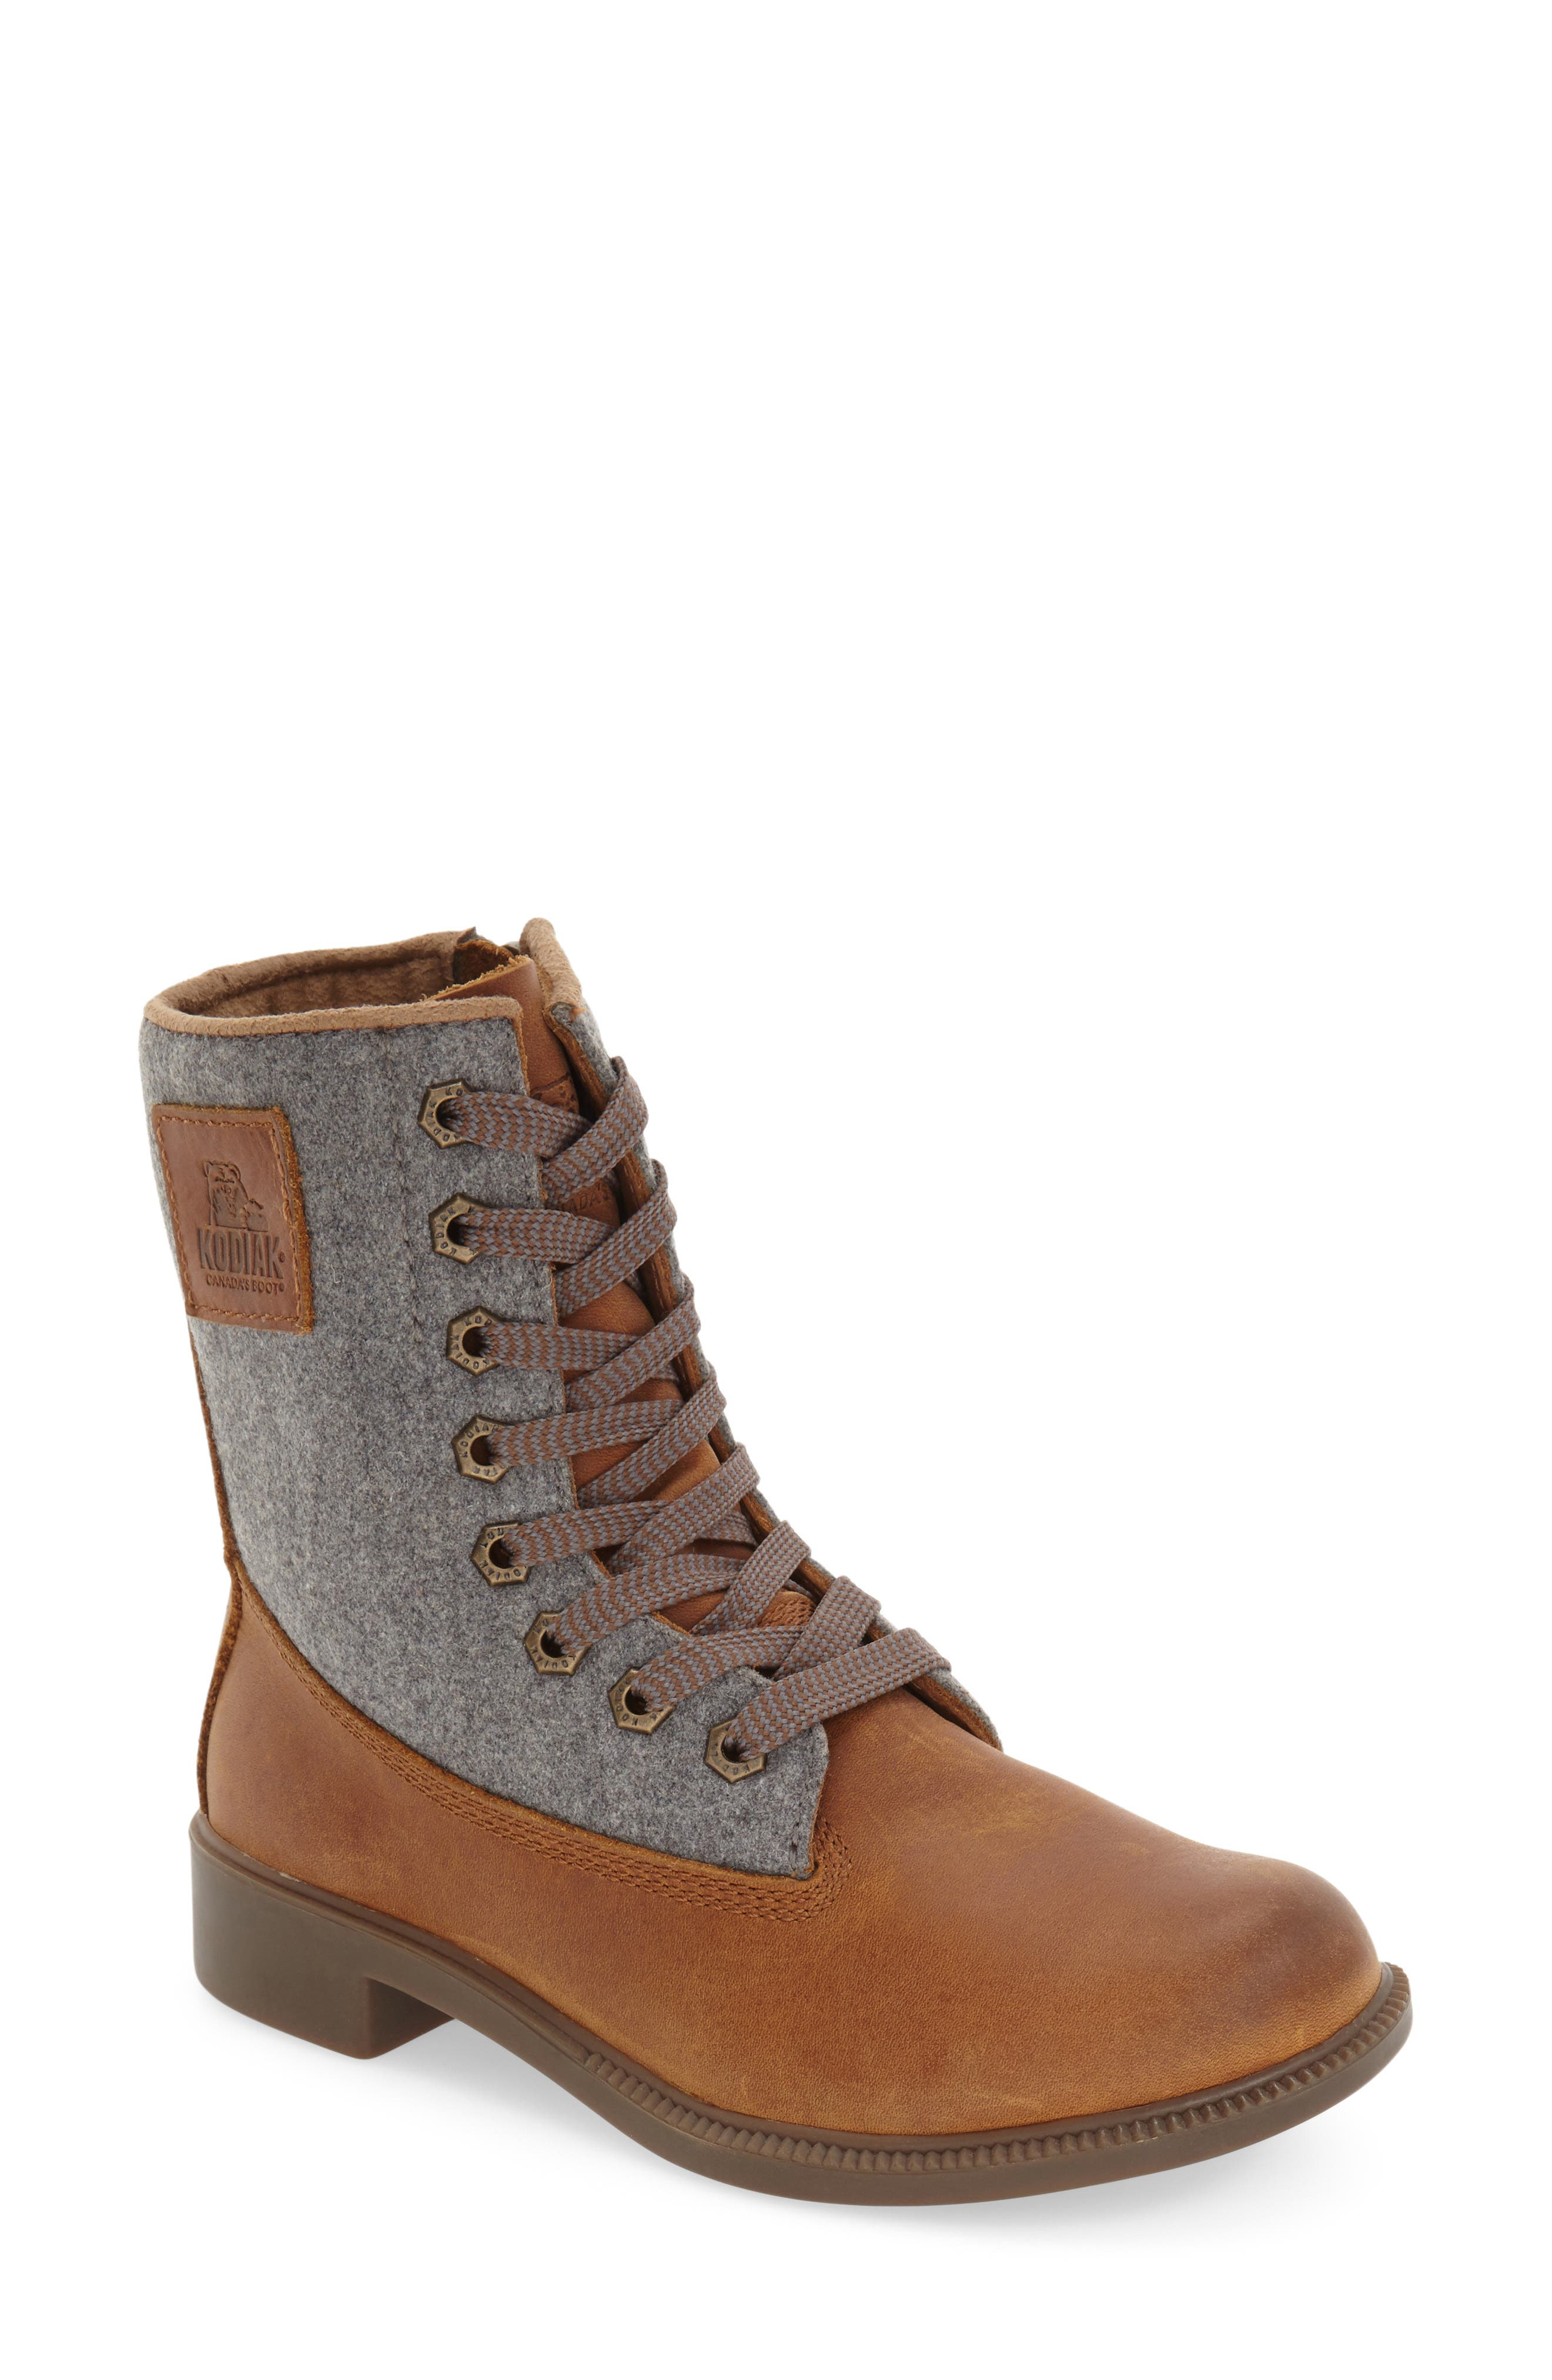 'Addison' Waterproof Insulated Zip Boot,                         Main,                         color, Caramel/ Grey Leather